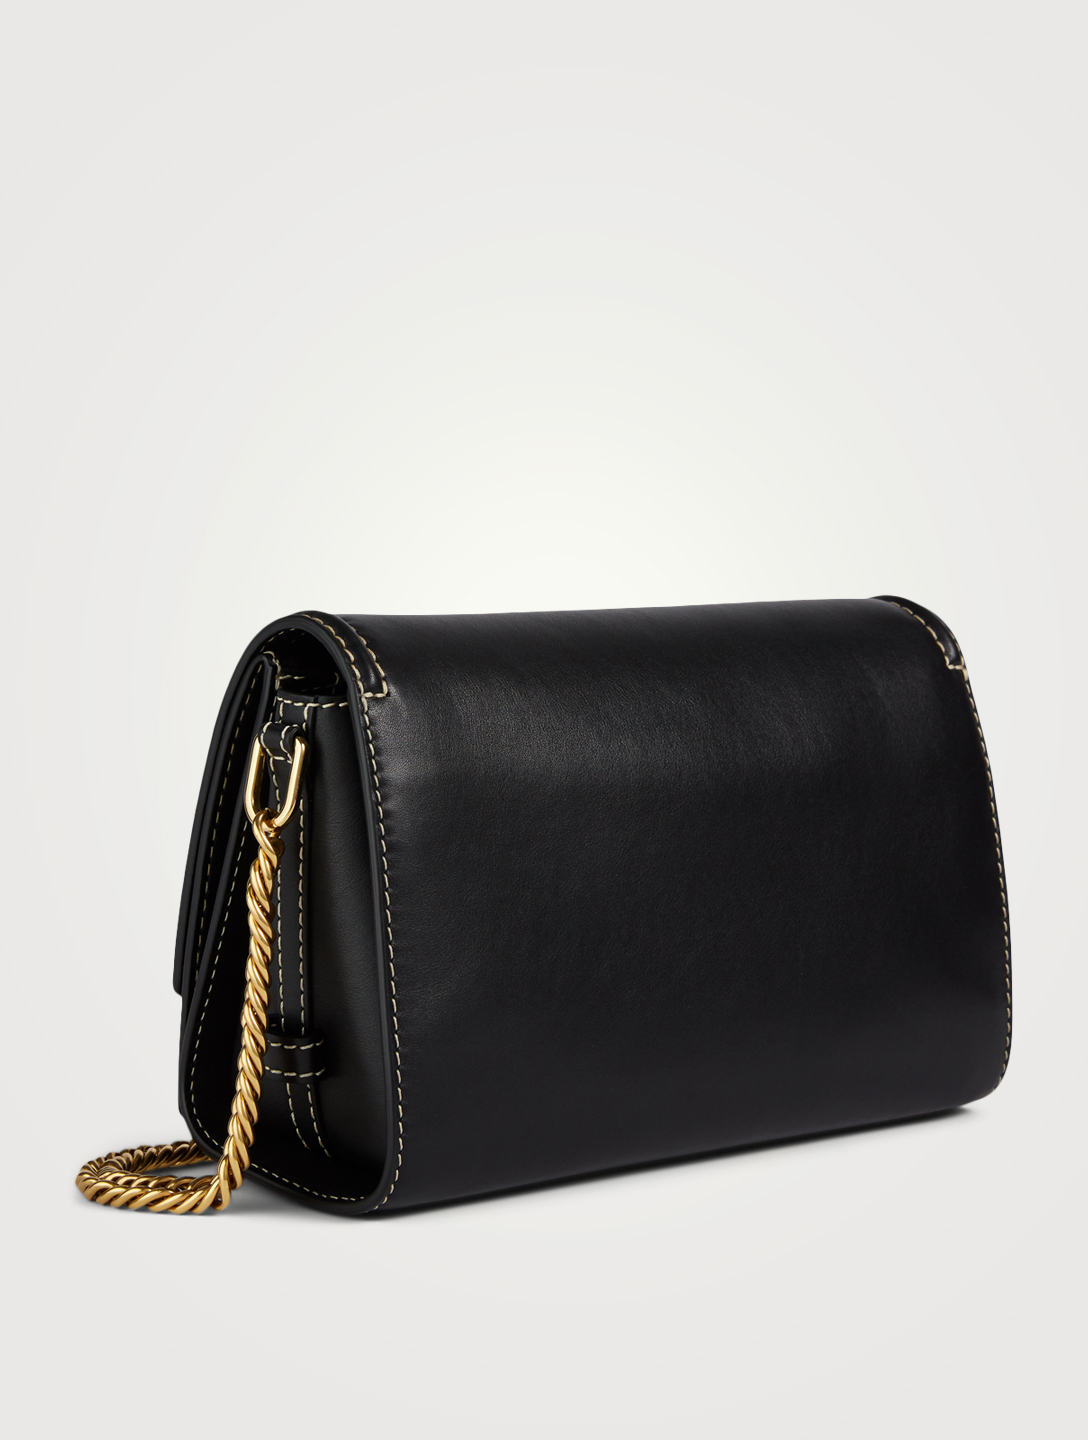 ALEXANDER MCQUEEN The Story Leather Chain Bag Women's Black